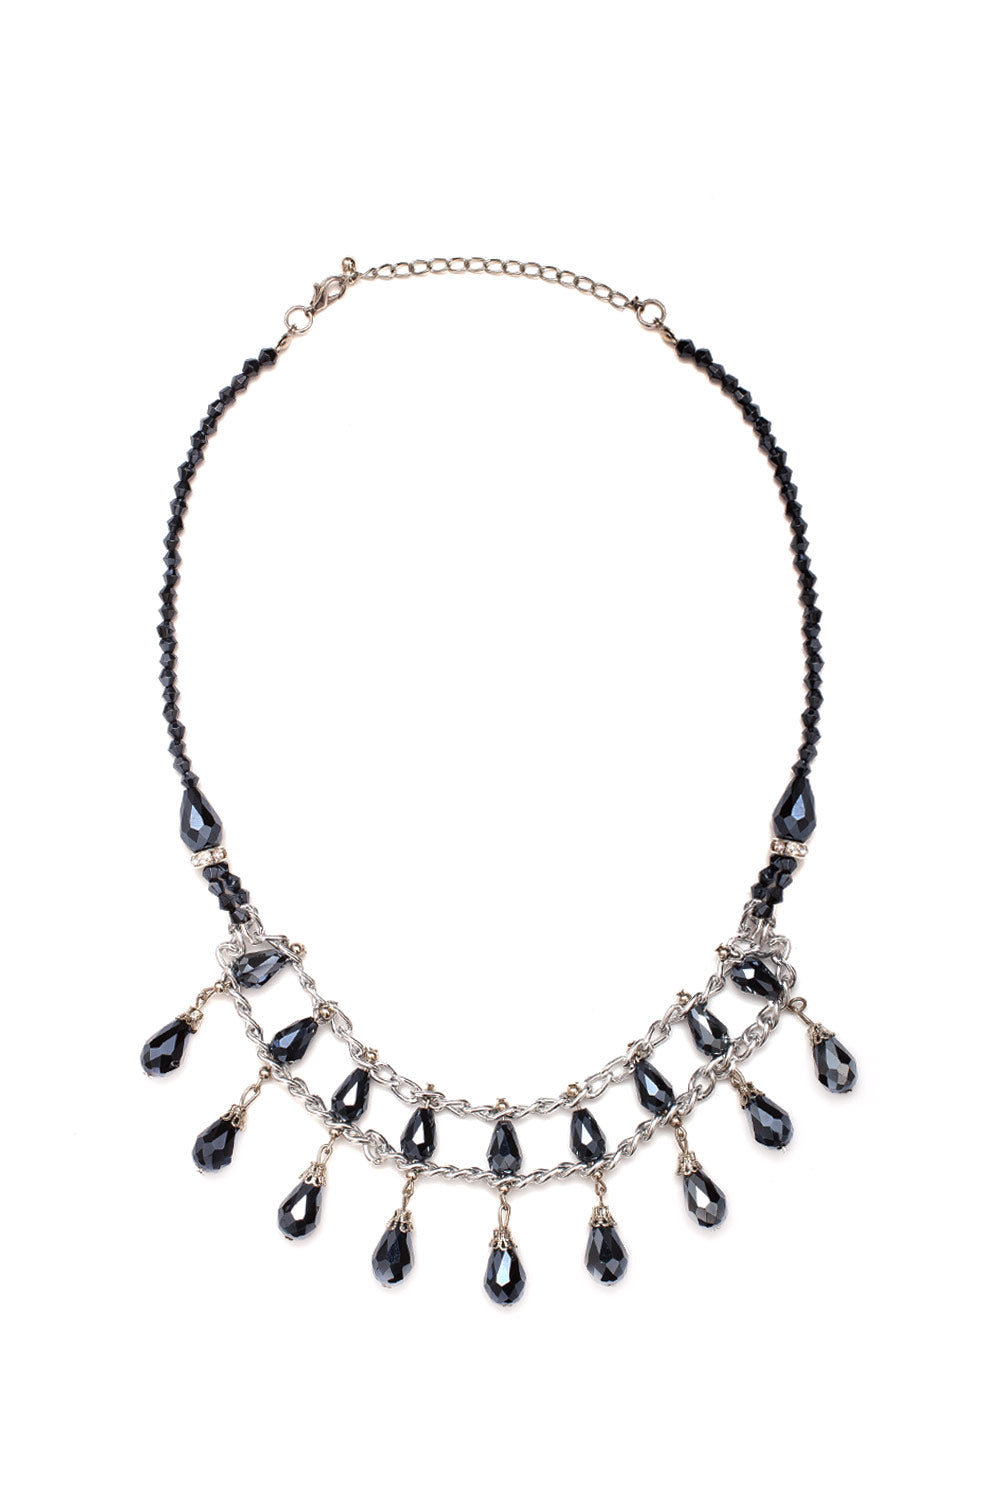 Type 2 Semi-formal Necklace